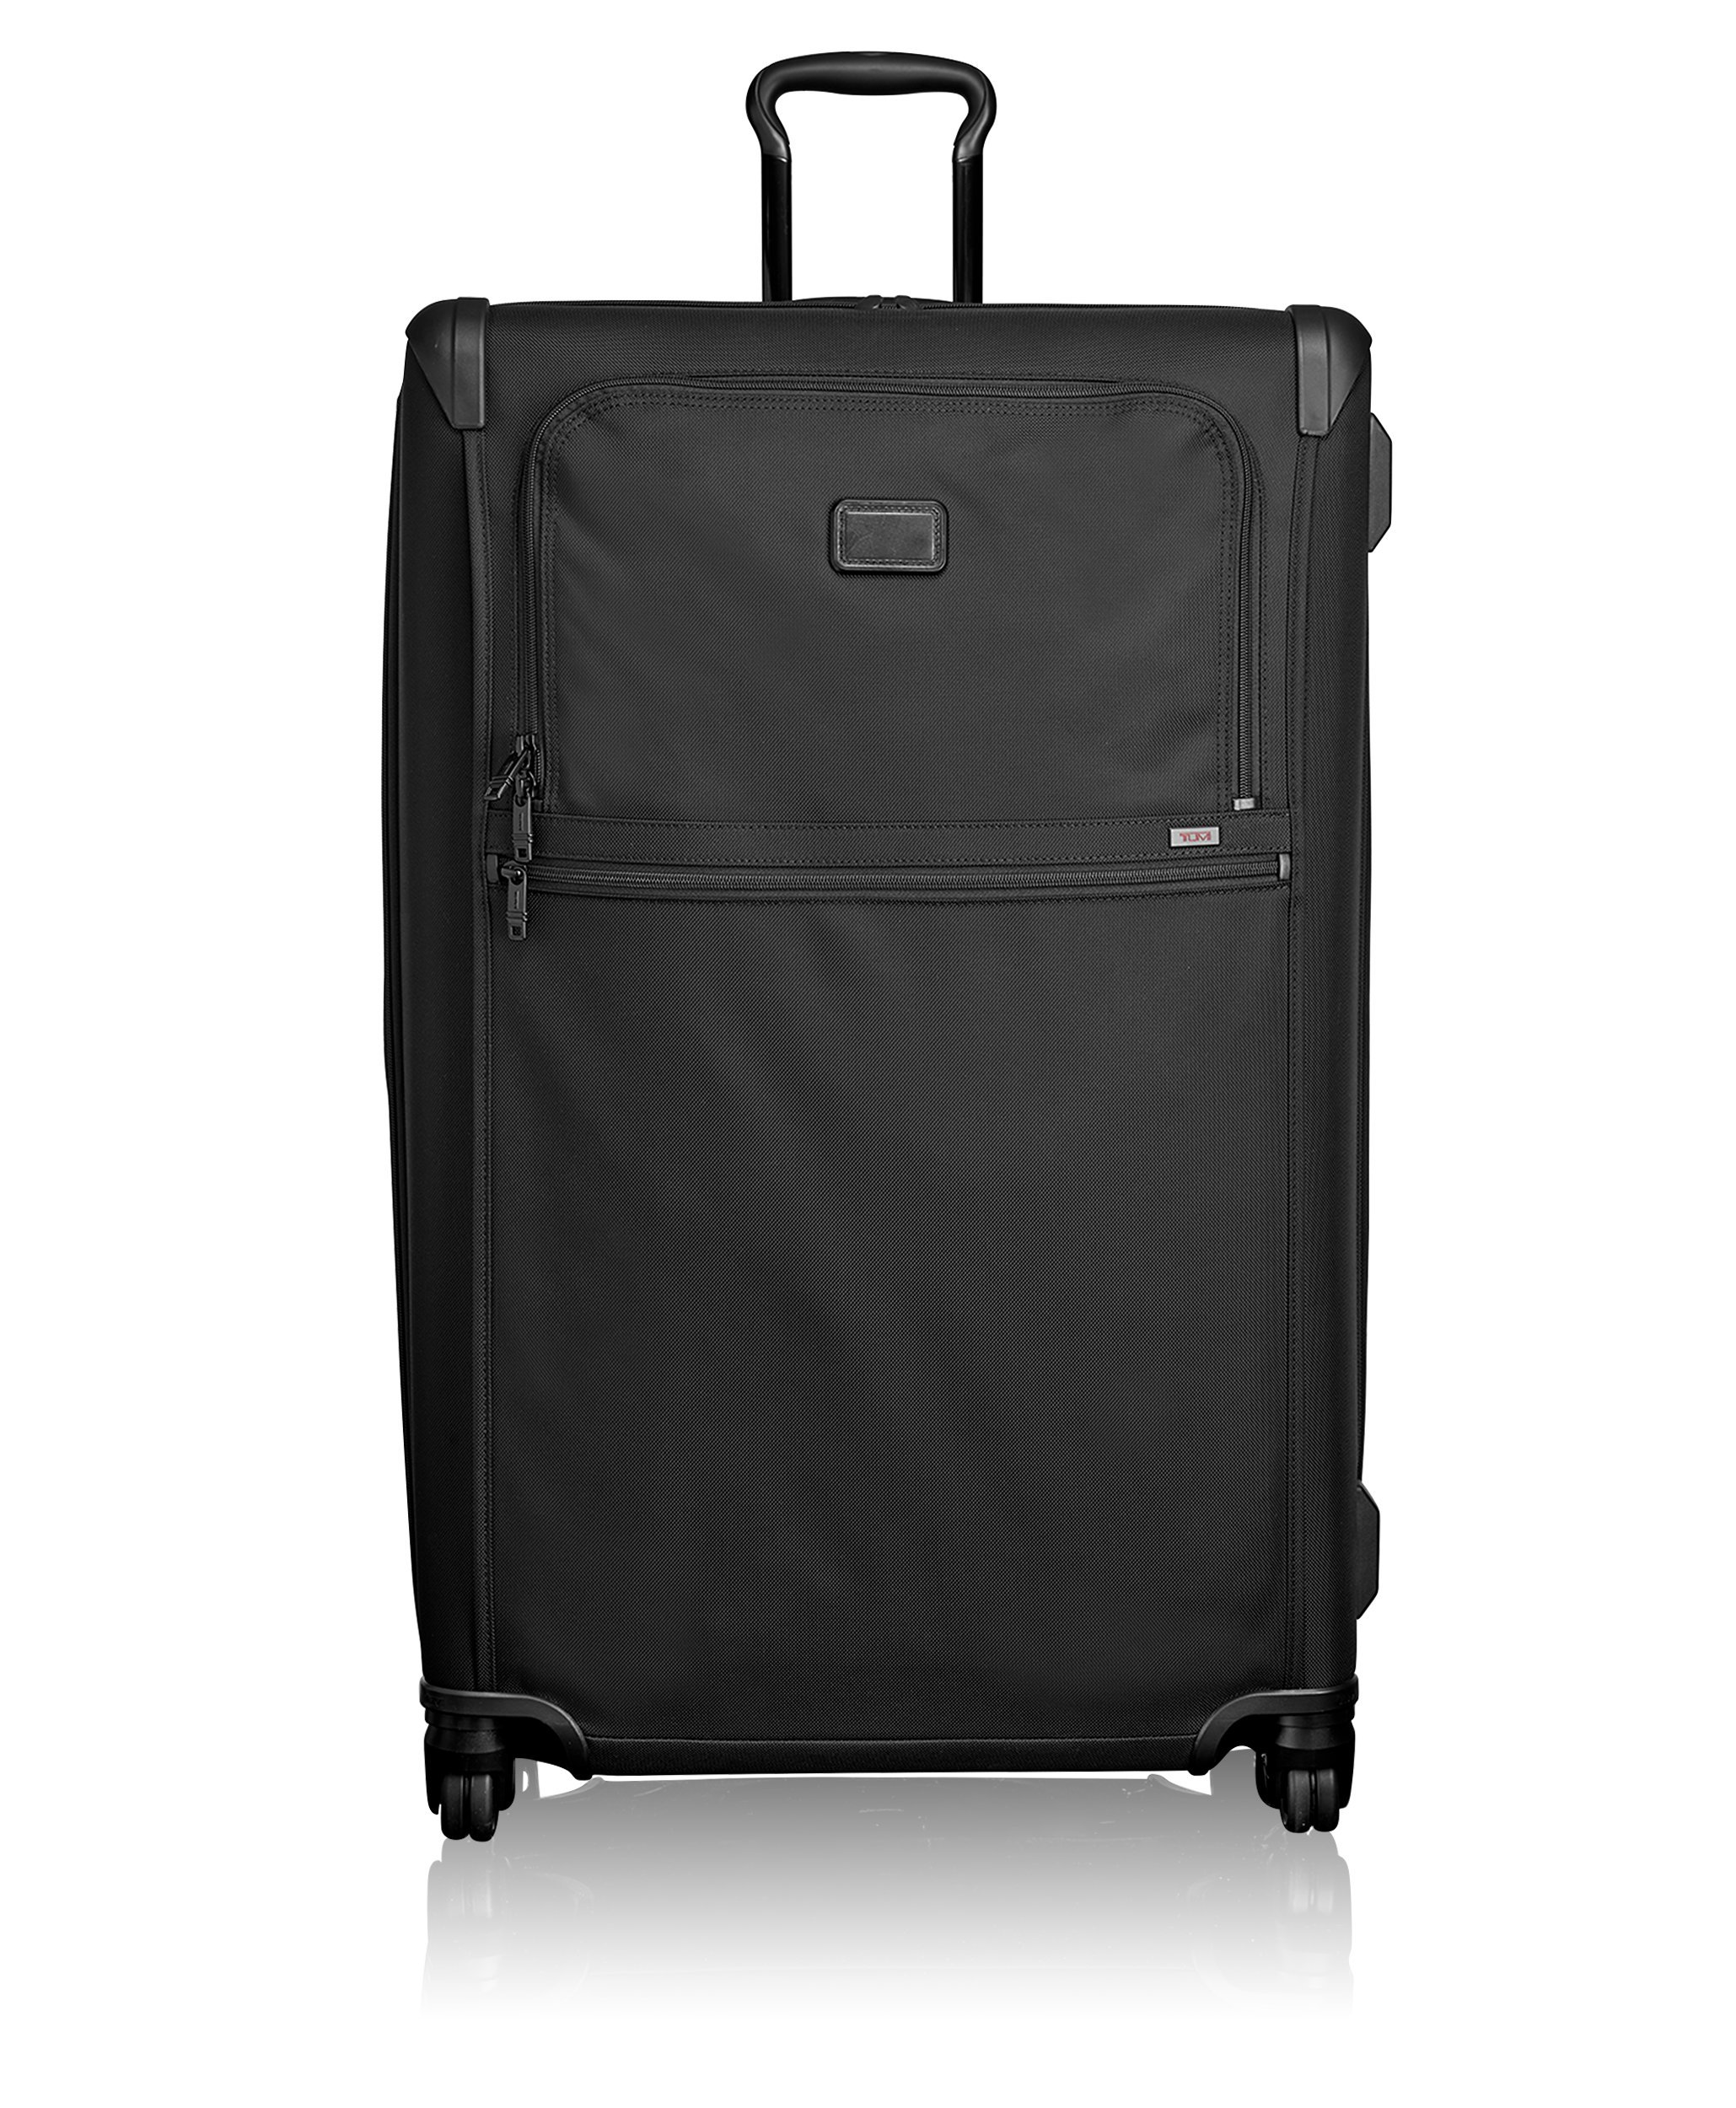 Tumi Alpha 2 Worldwide Trip Expandable 4 Wheel Packing Case, Black, One Size by Tumi